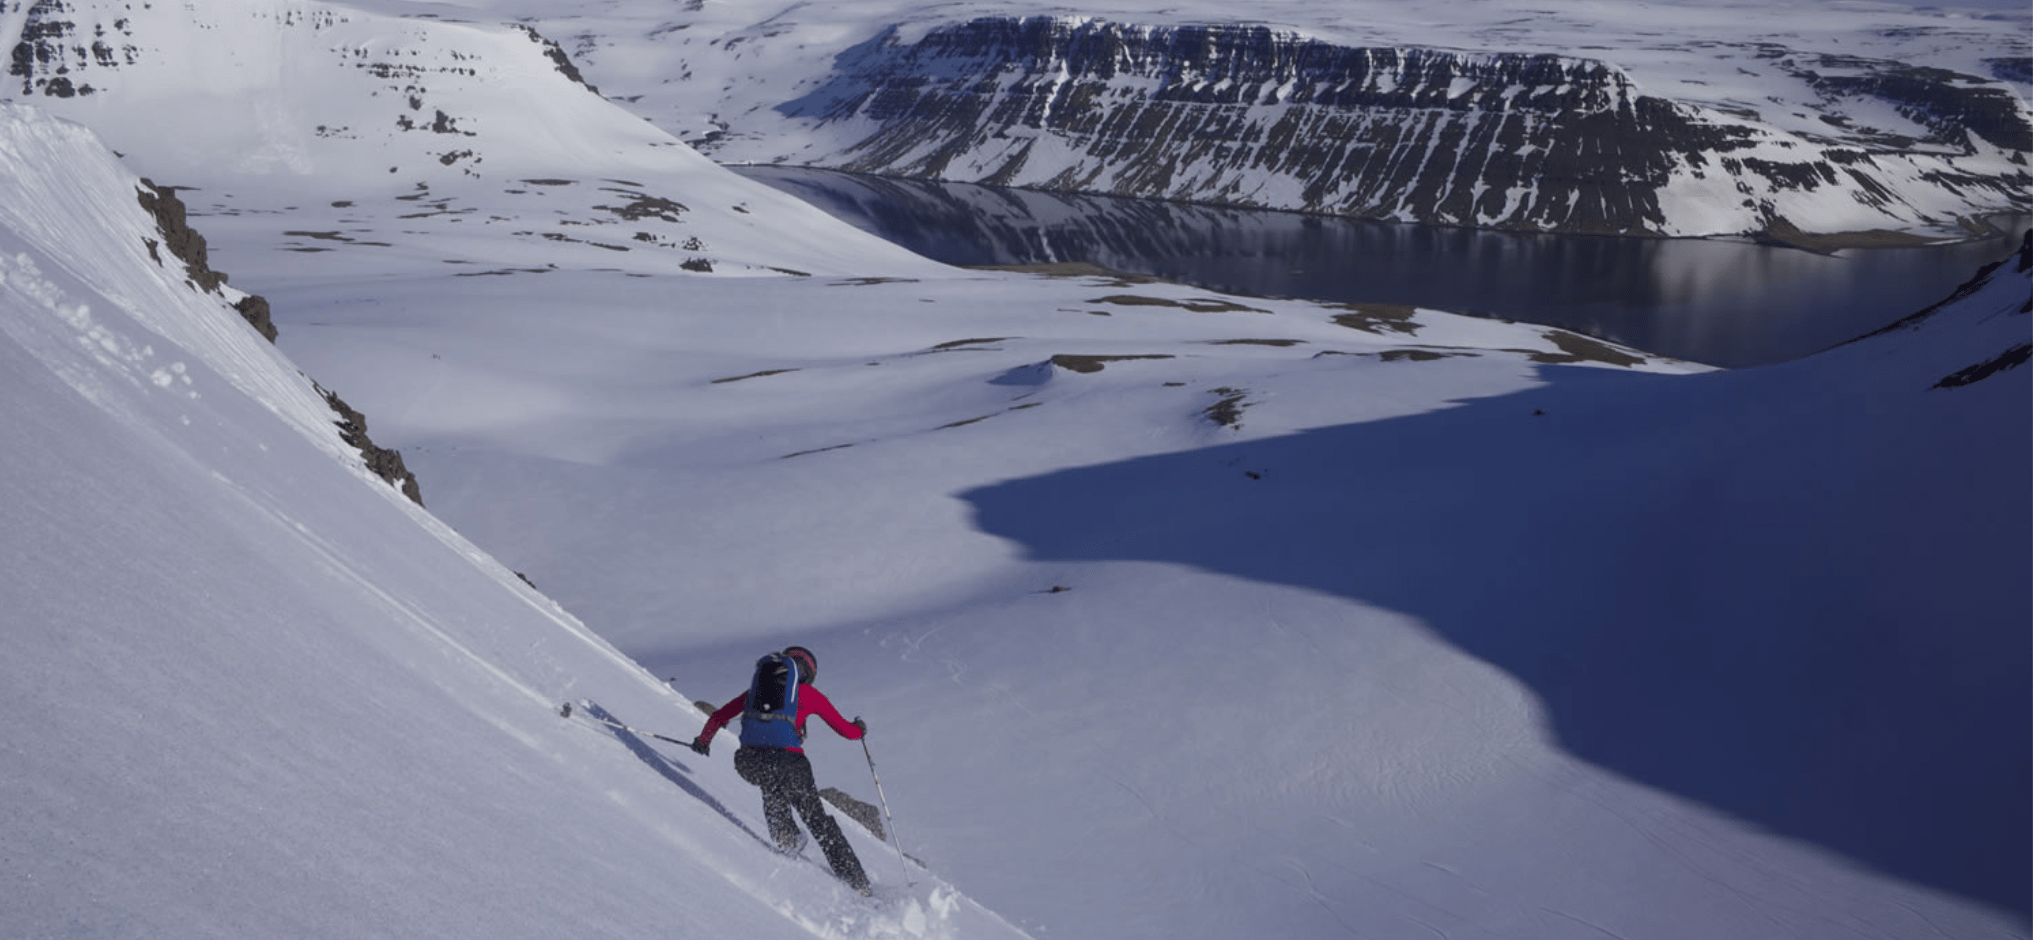 Iceland, expedition, ice axe expeditions, fjords